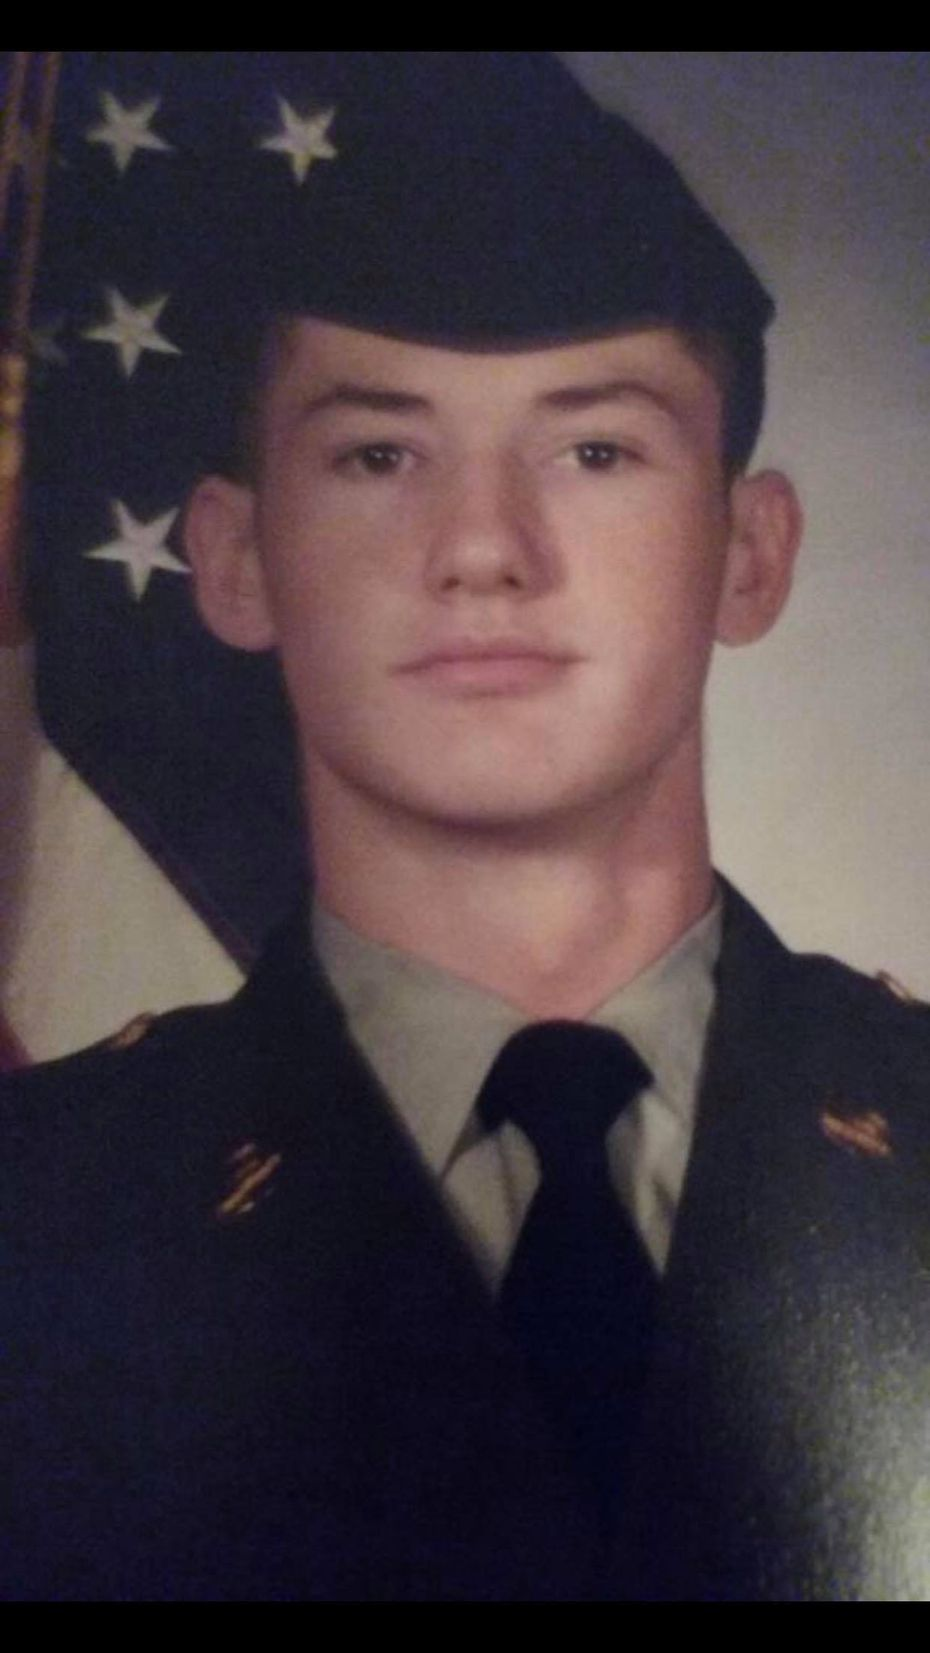 Photo of Donald Ashcraft as a young Army soldier in the mid-1980s. Ashcraft, 51, was shot and killed by Veterans Affairs officers on Jan. 8, 2020, during a confrontation outside the Dallas VA Medical Center.